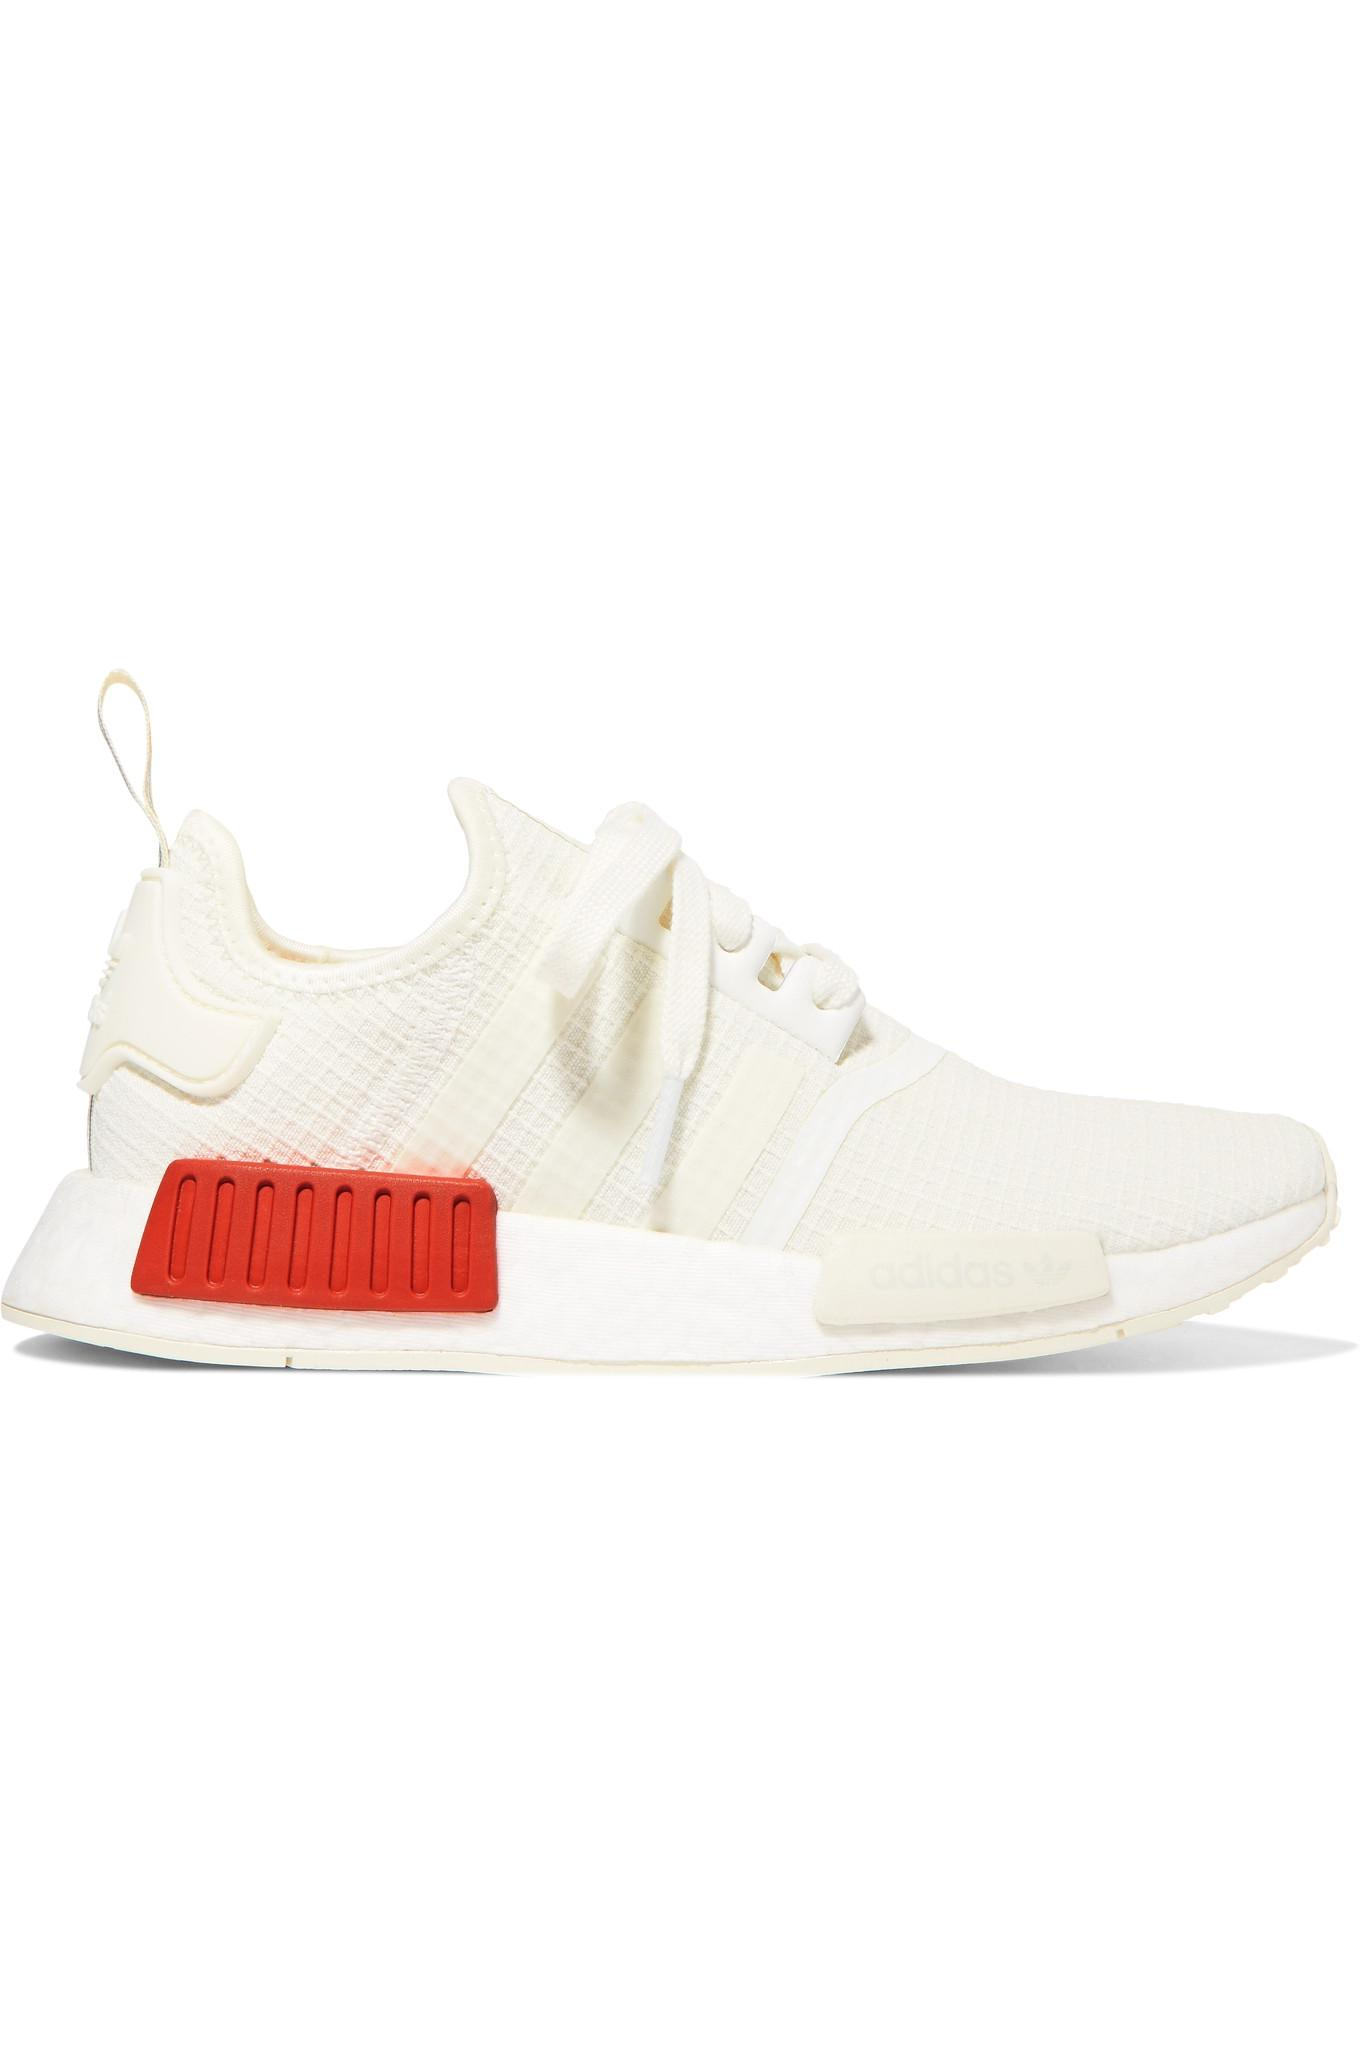 f3f6577f3 adidas Originals. Women s White Nmd R1 Rubber-trimmed Primeknit Trainers